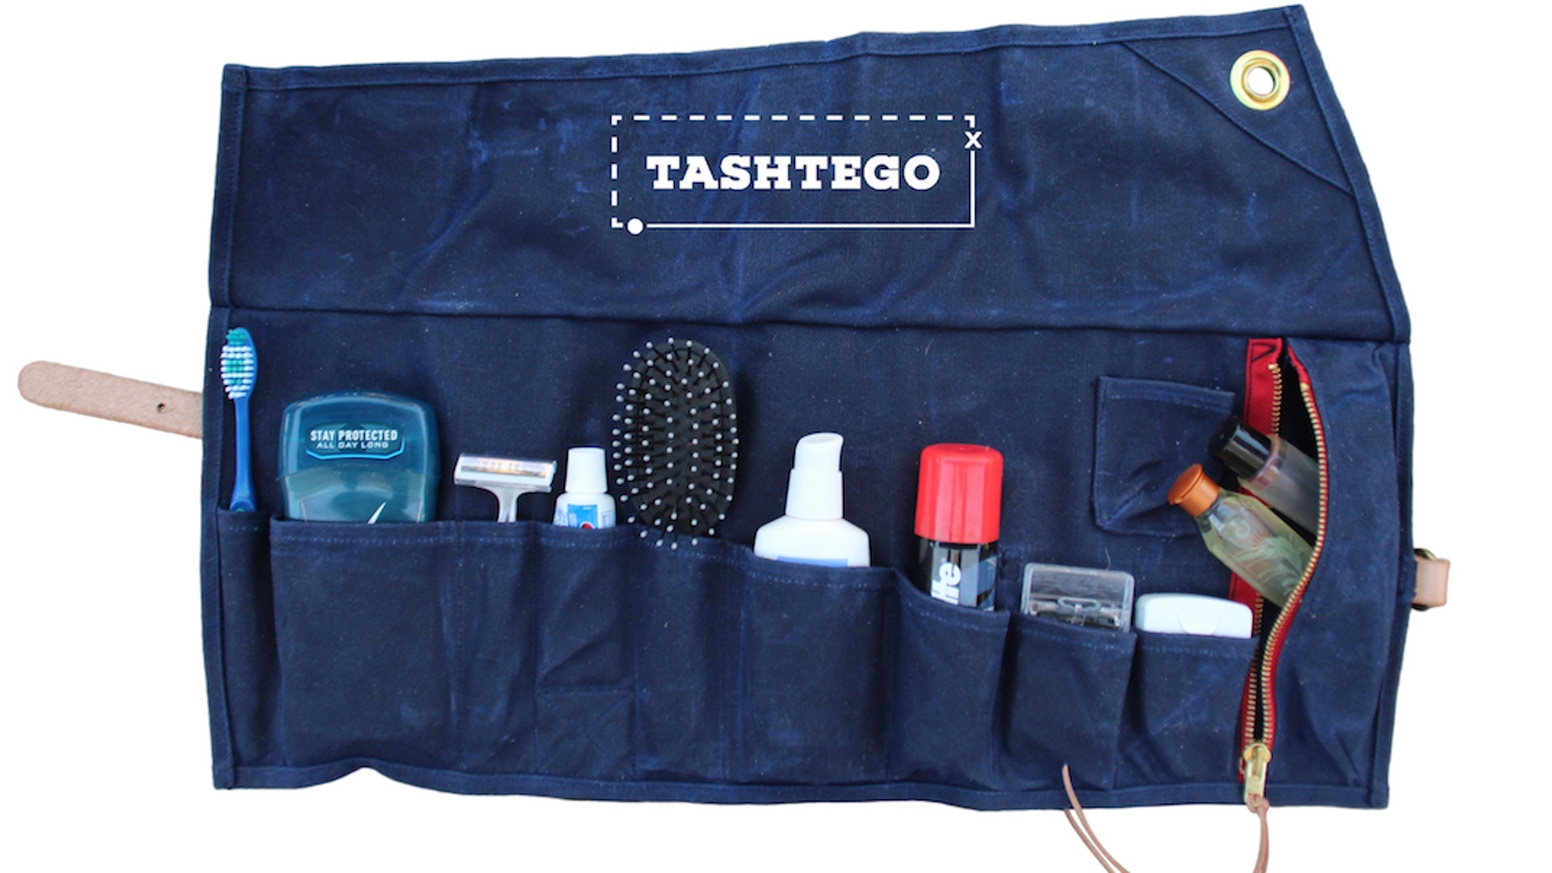 The Tashtego Travel Kit Is Roll Up Toiletry For Avid Adventurers Our